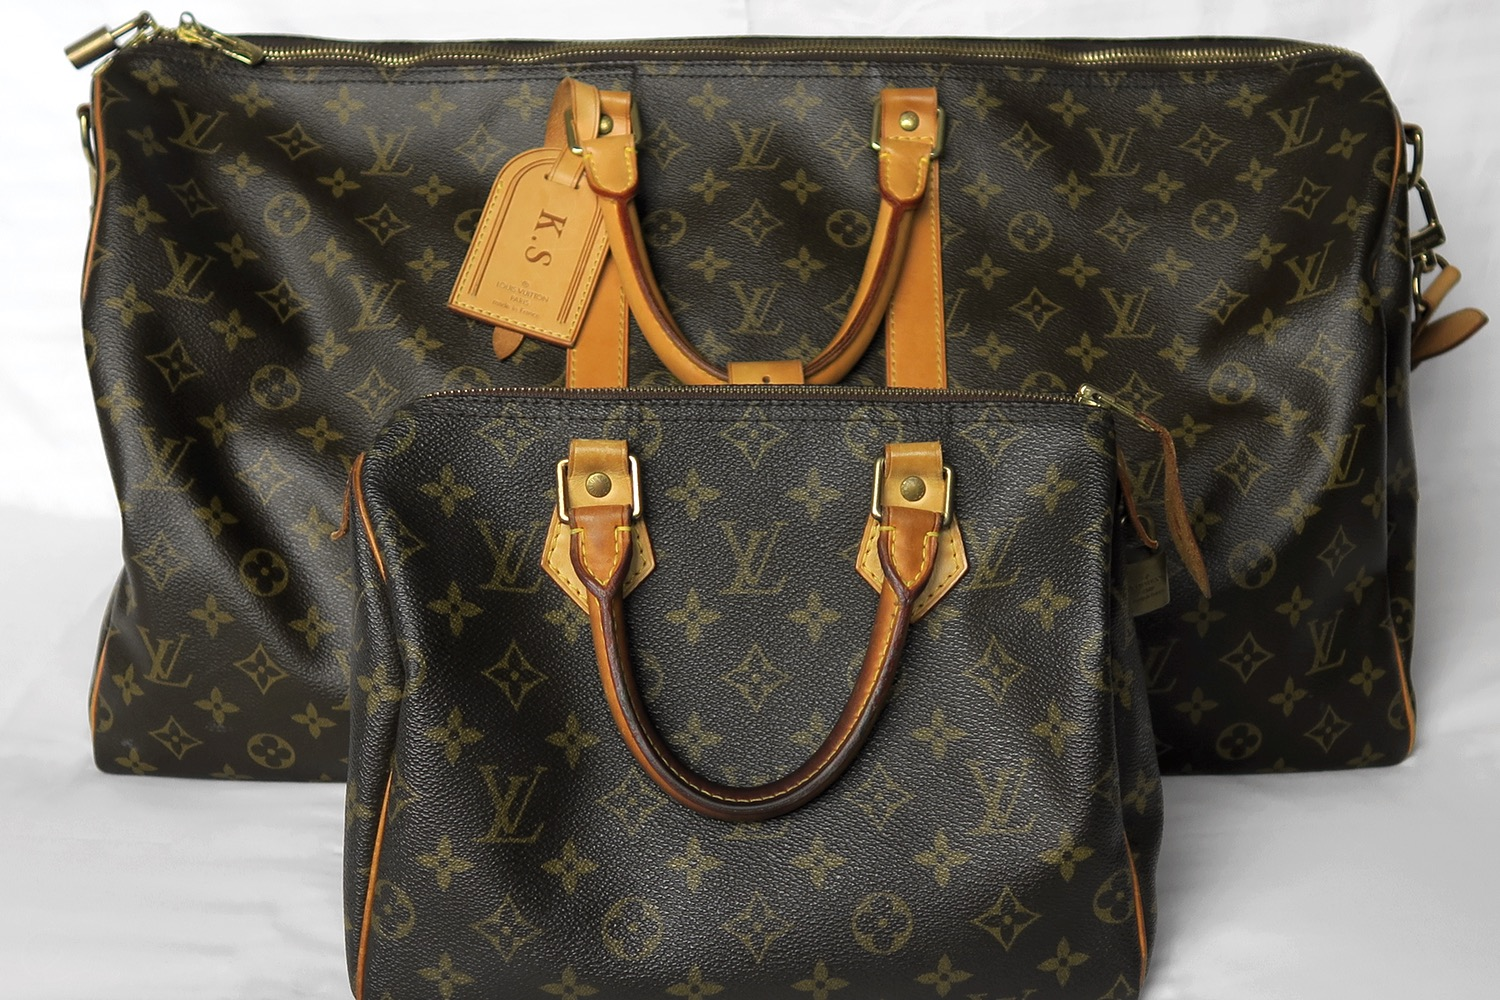 louis-vuitton-keepall-55-strap-speedy-25-monogram-character-32-lifestyle